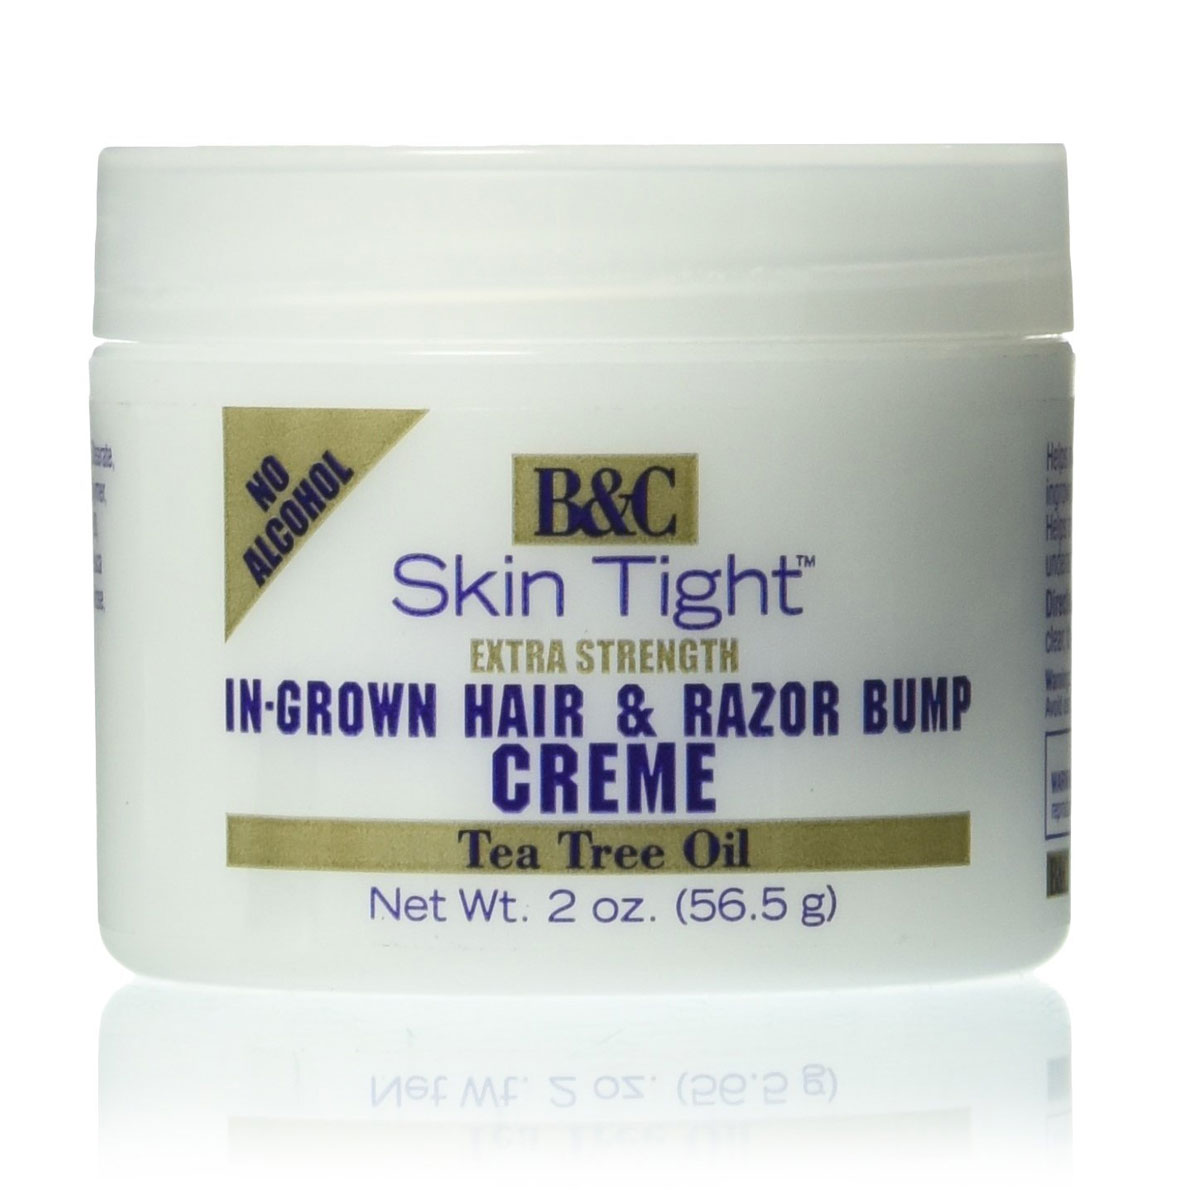 Image of B&C Skin Tight In-Grown Hair and Razor Bump Creme Extra Strength, 2oz